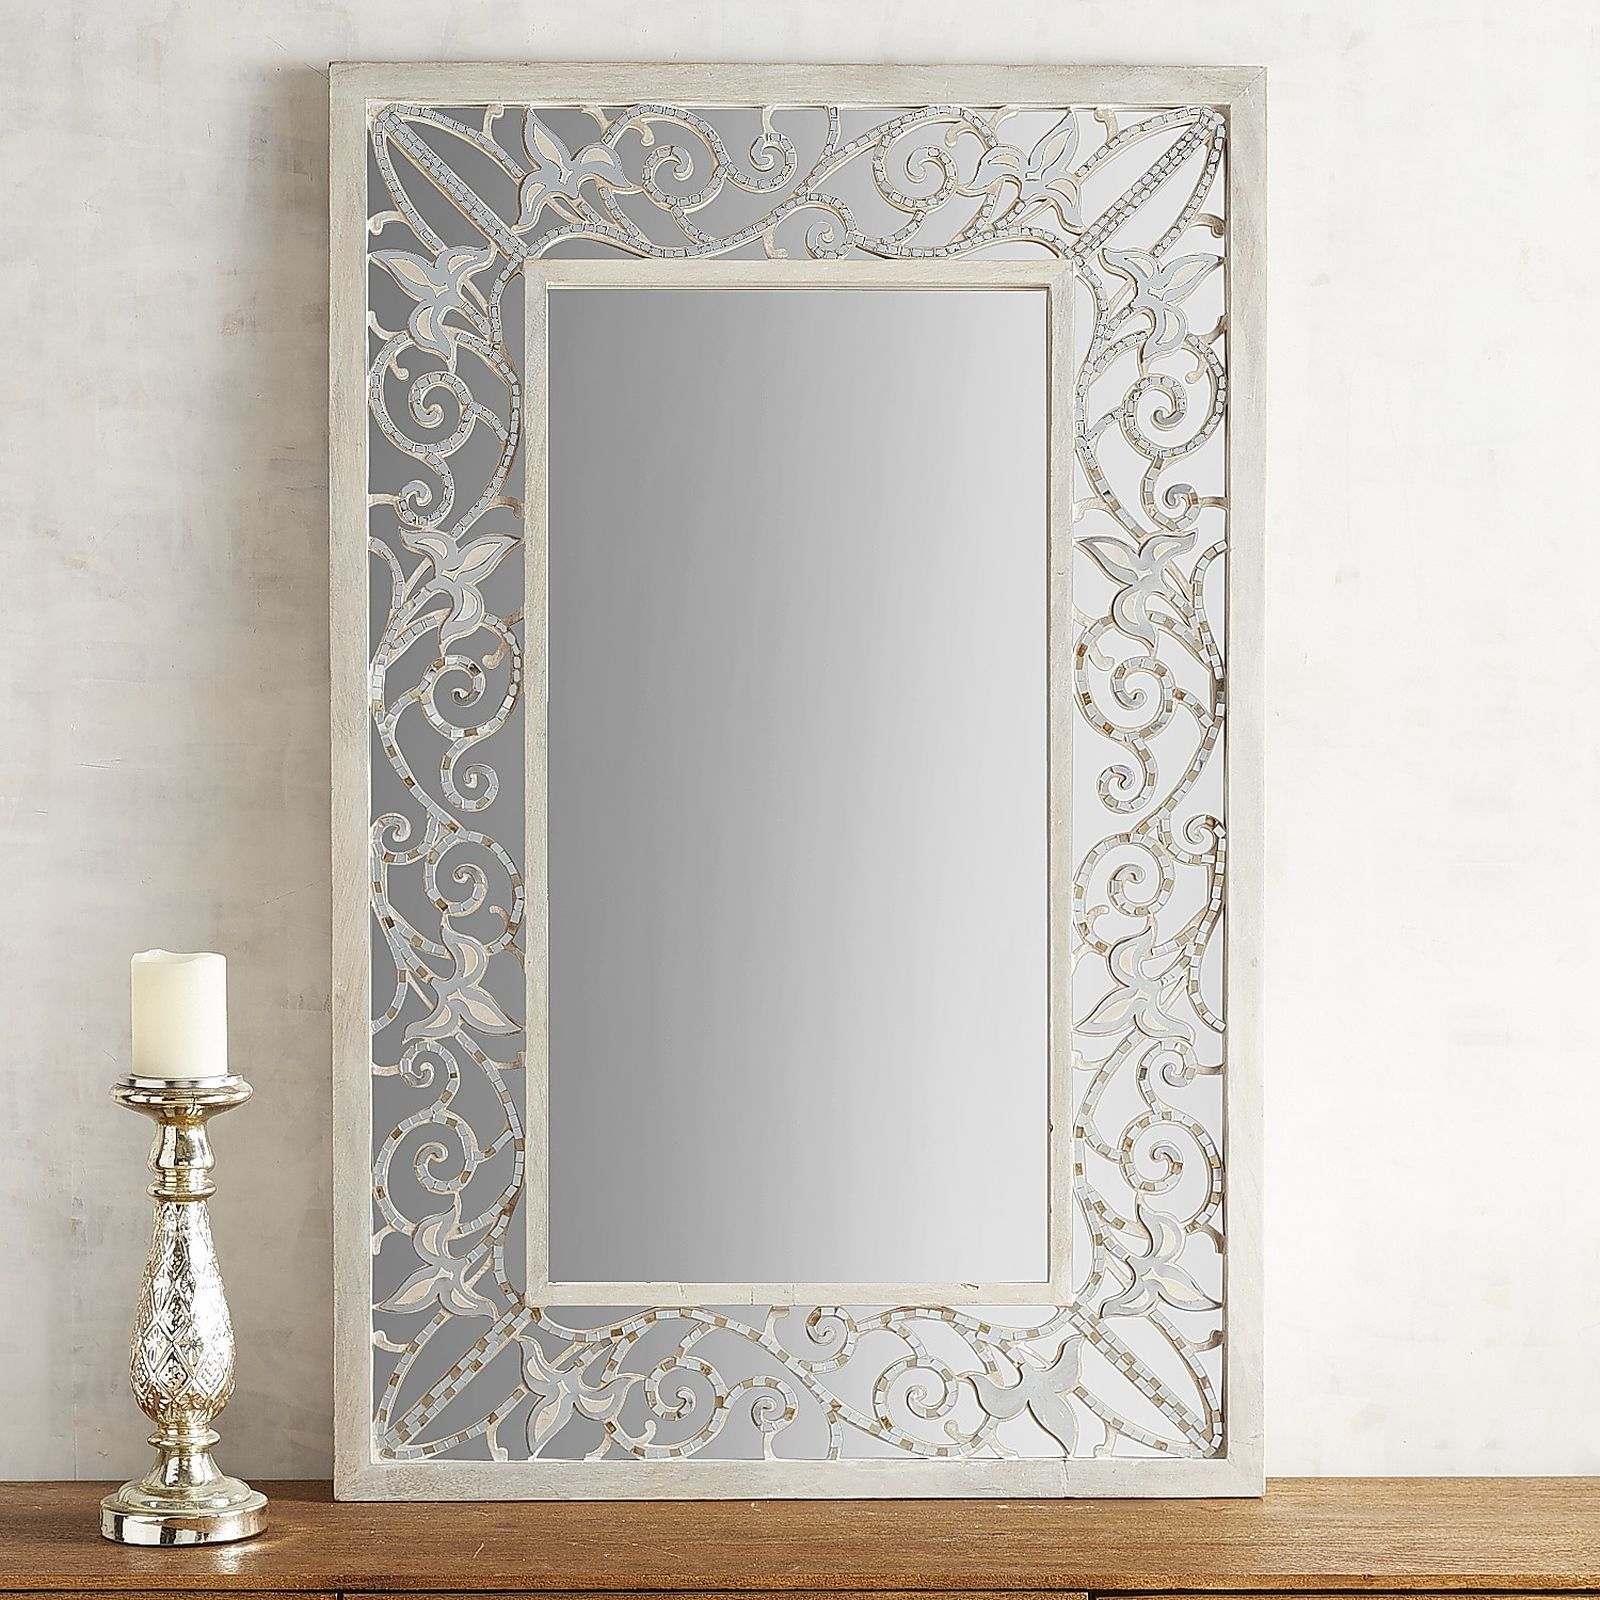 Mix Elegance With Glamour And You Get Our Nannette Mirror